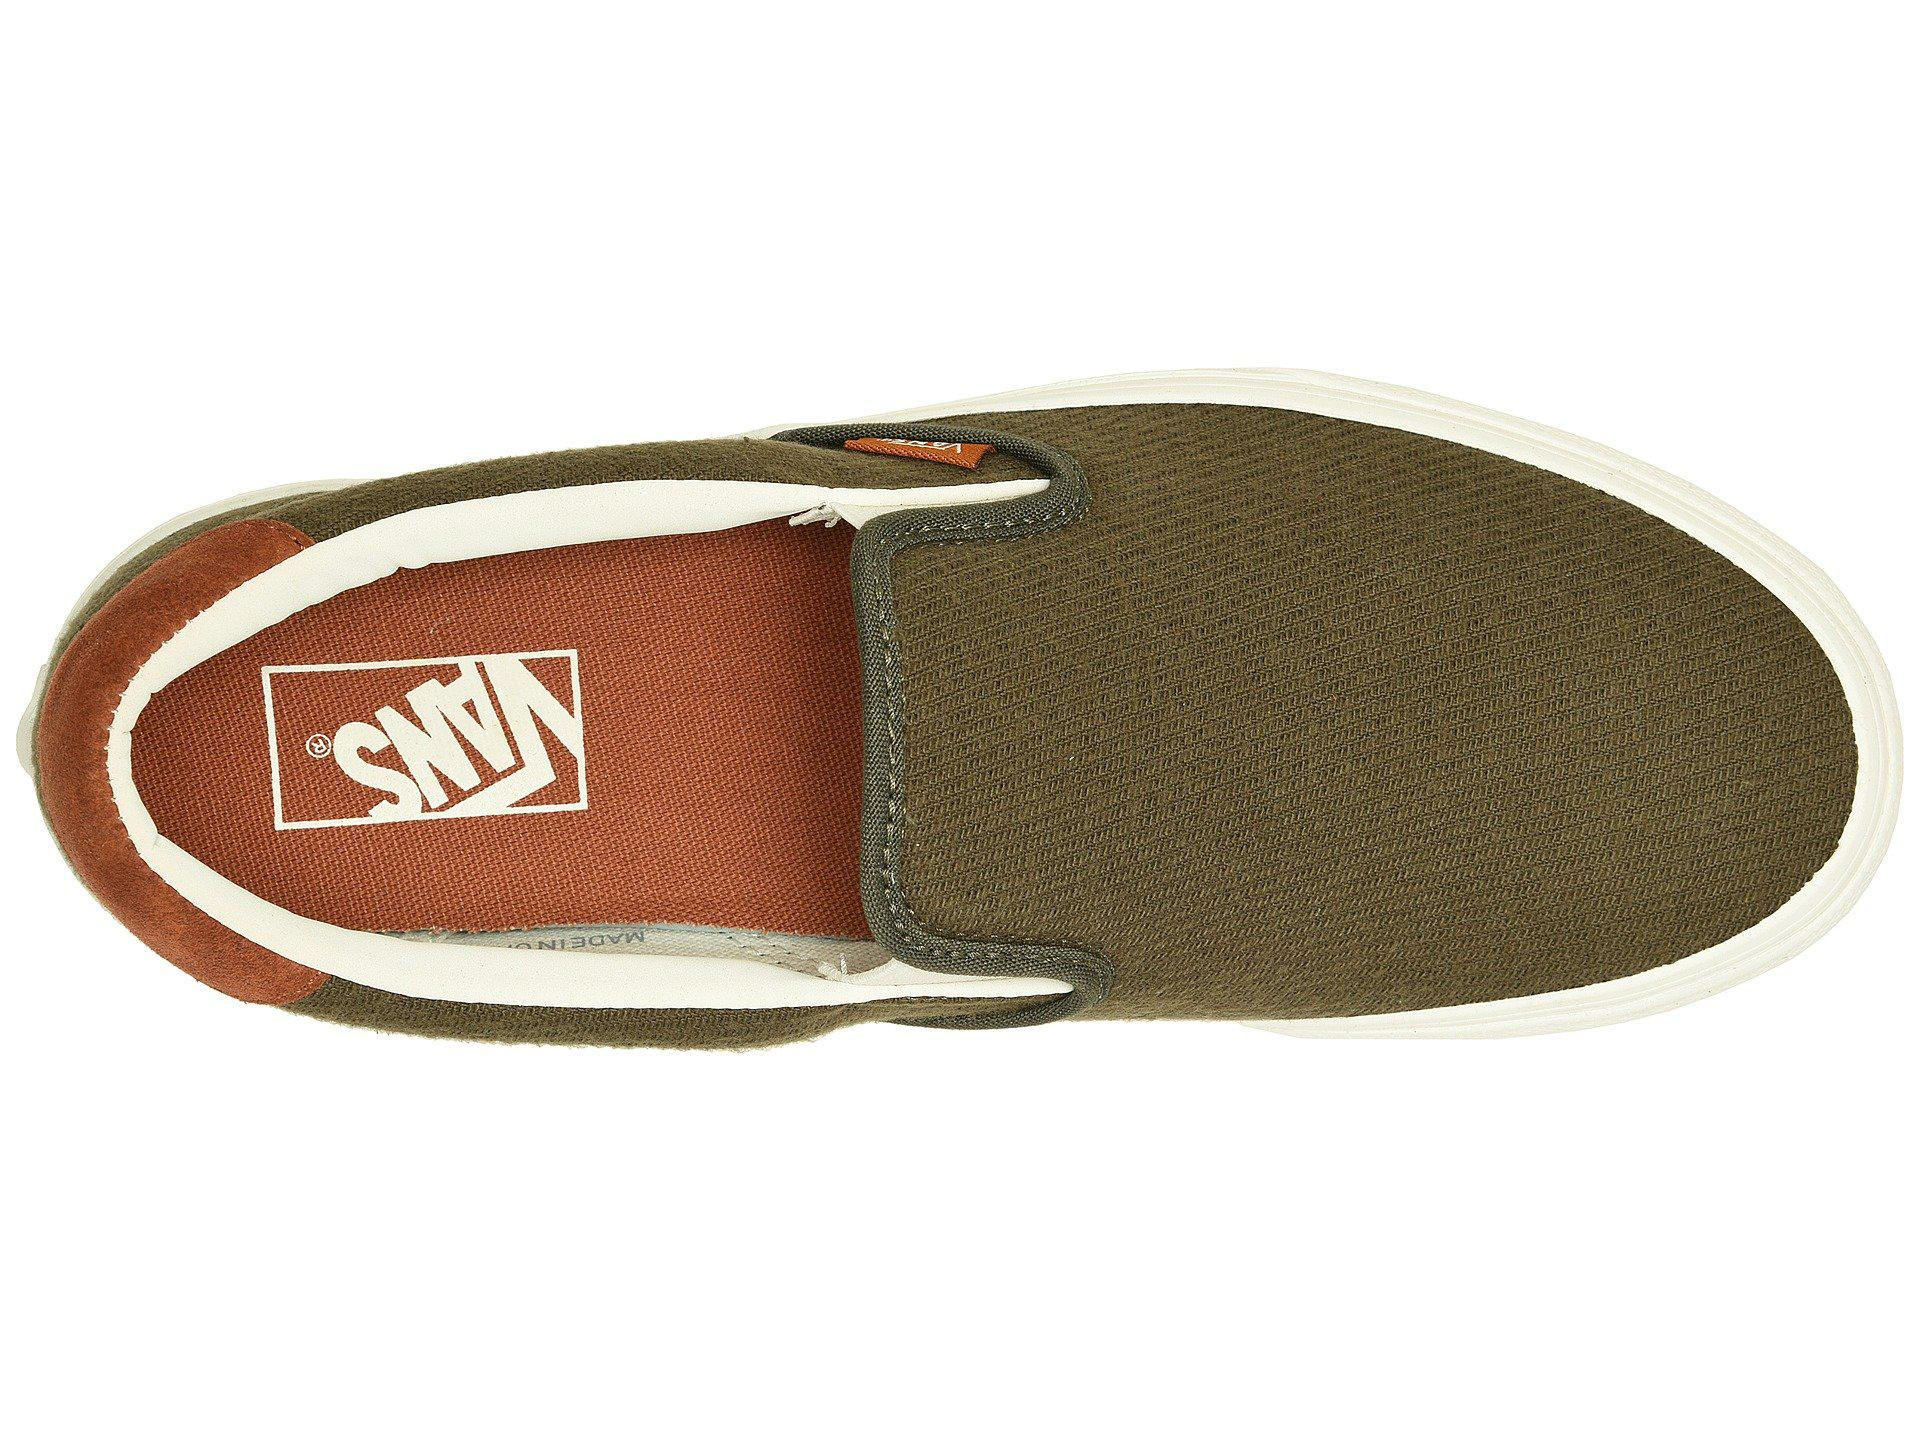 33f2d7f910f8dc Lyst - Vans Slip-on 59 ((flannel) Dusty Olive) Skate Shoes in Green ...